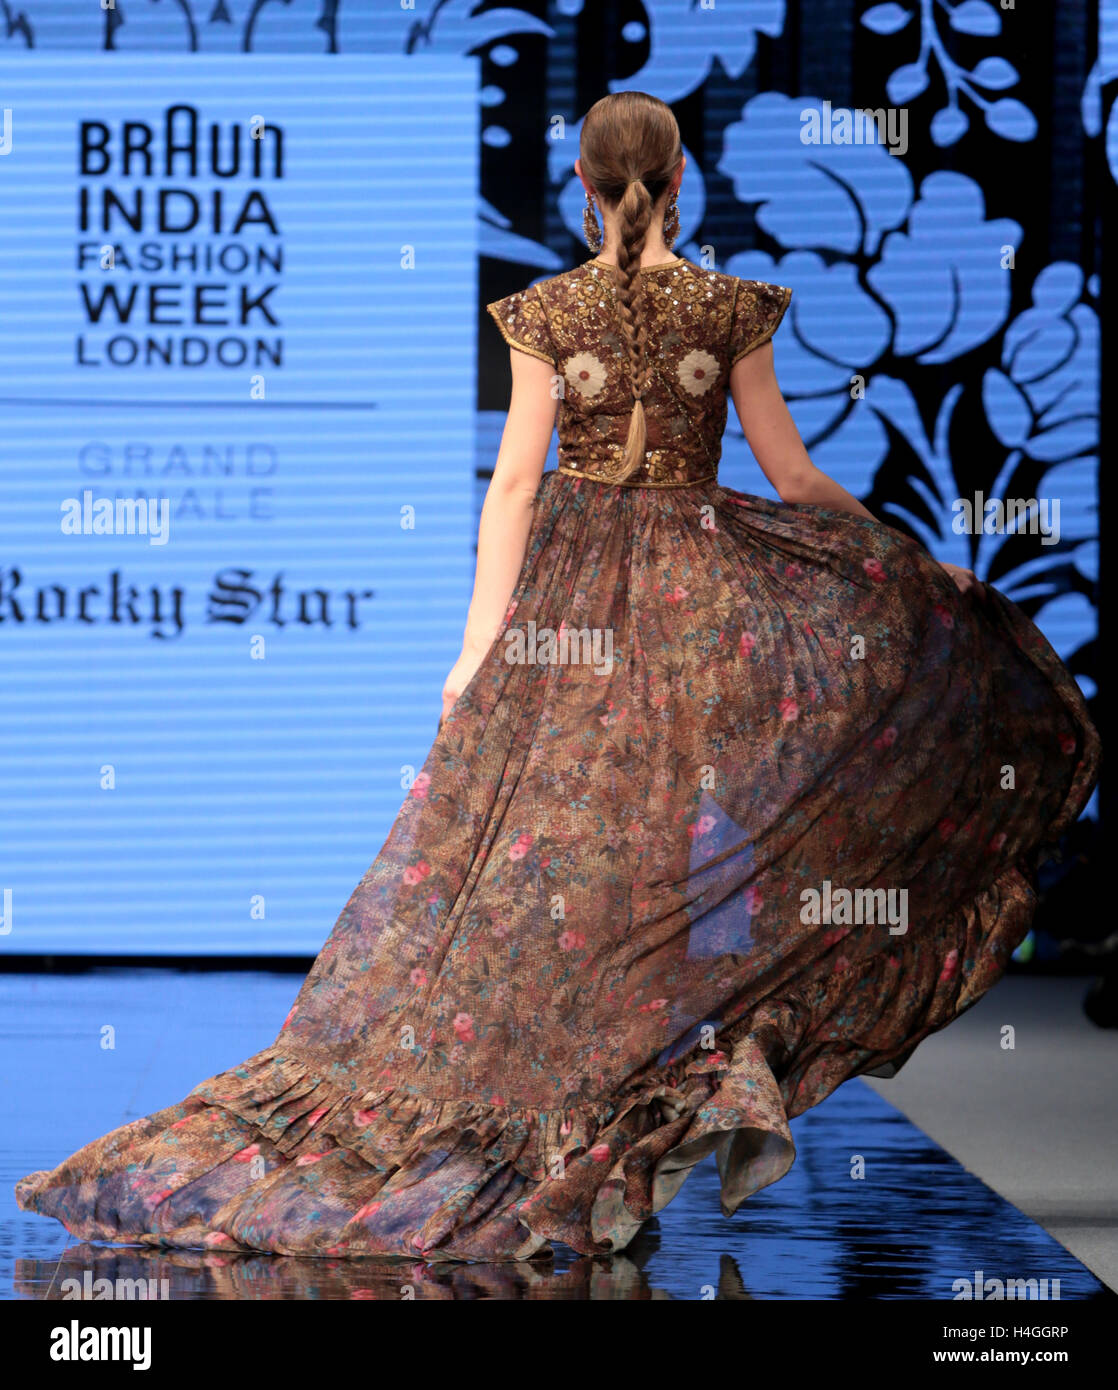 London Uk 16 October 2016 The Grand Finale Of Indian Fashion Week Stock Photo 123295642 Alamy